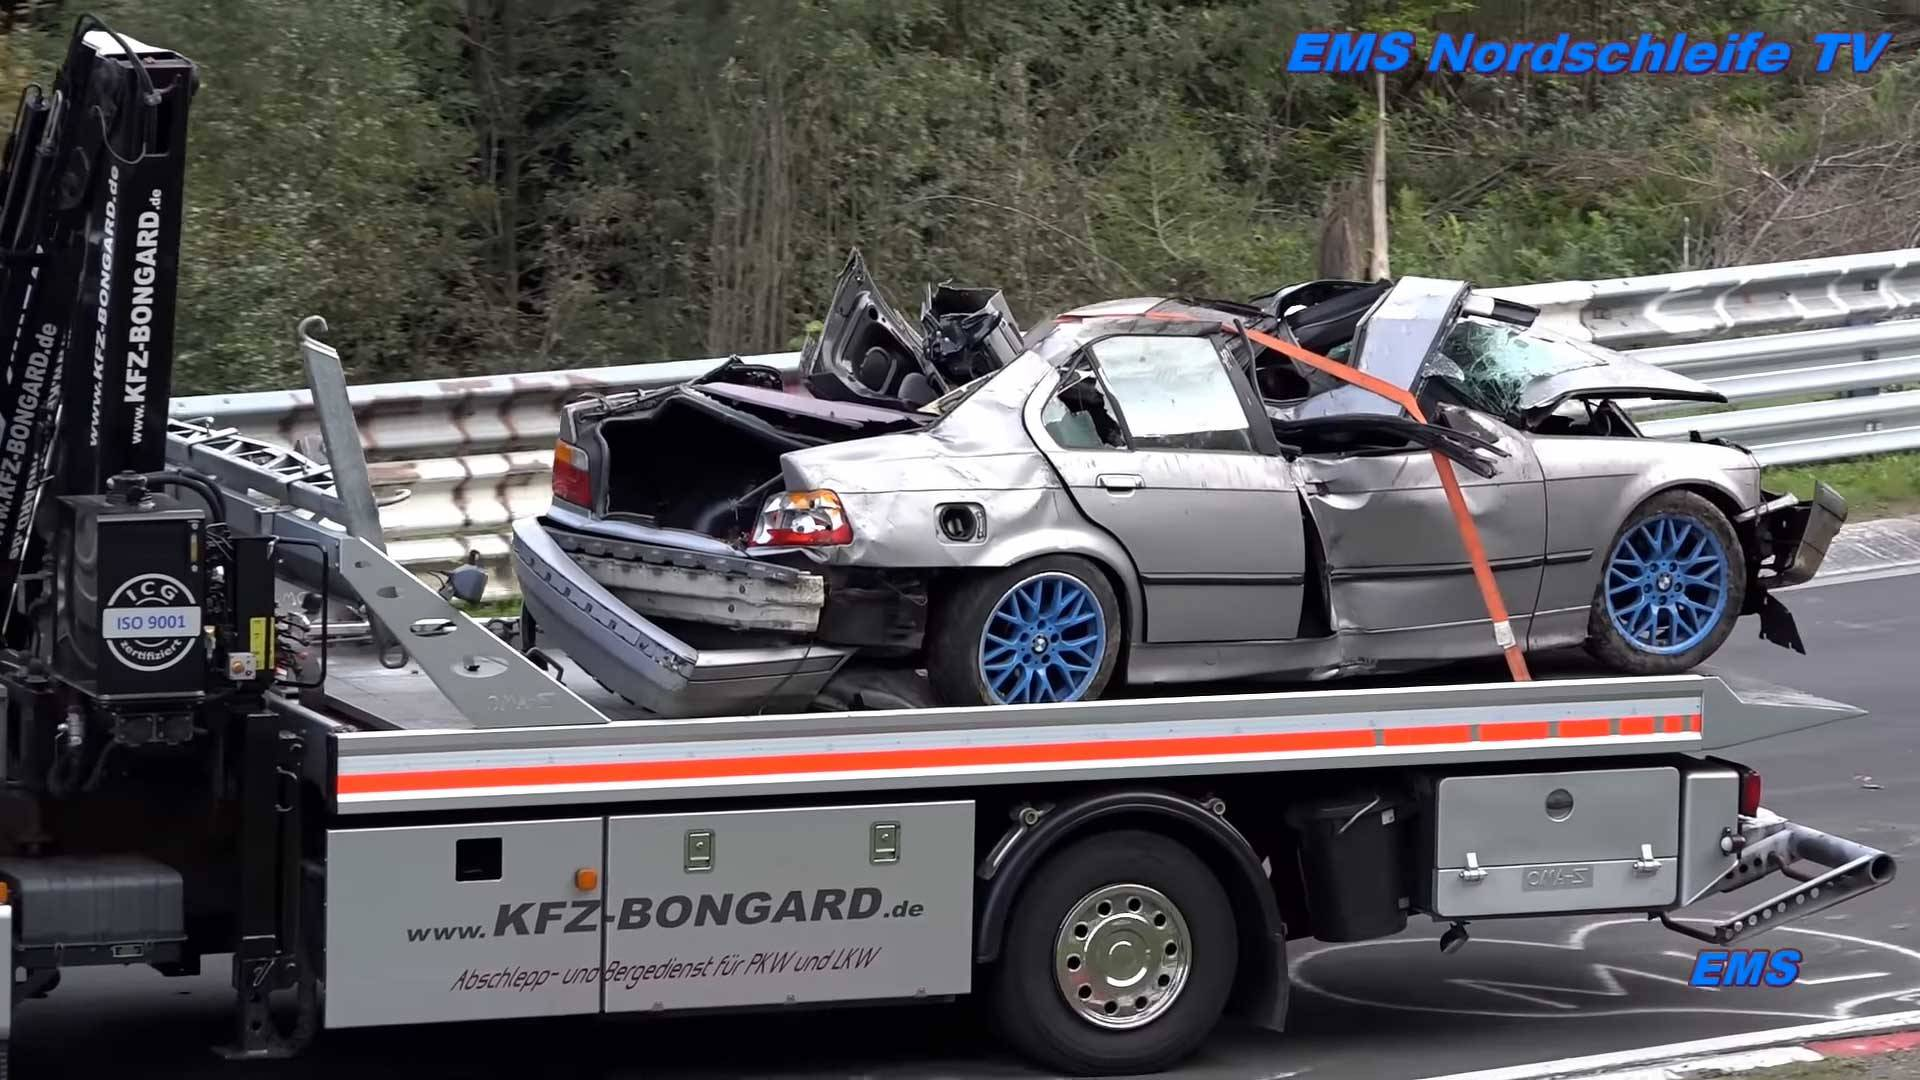 Nürburgring Wrecked Car Vid Reminds Us How Deadly The Track Can Be